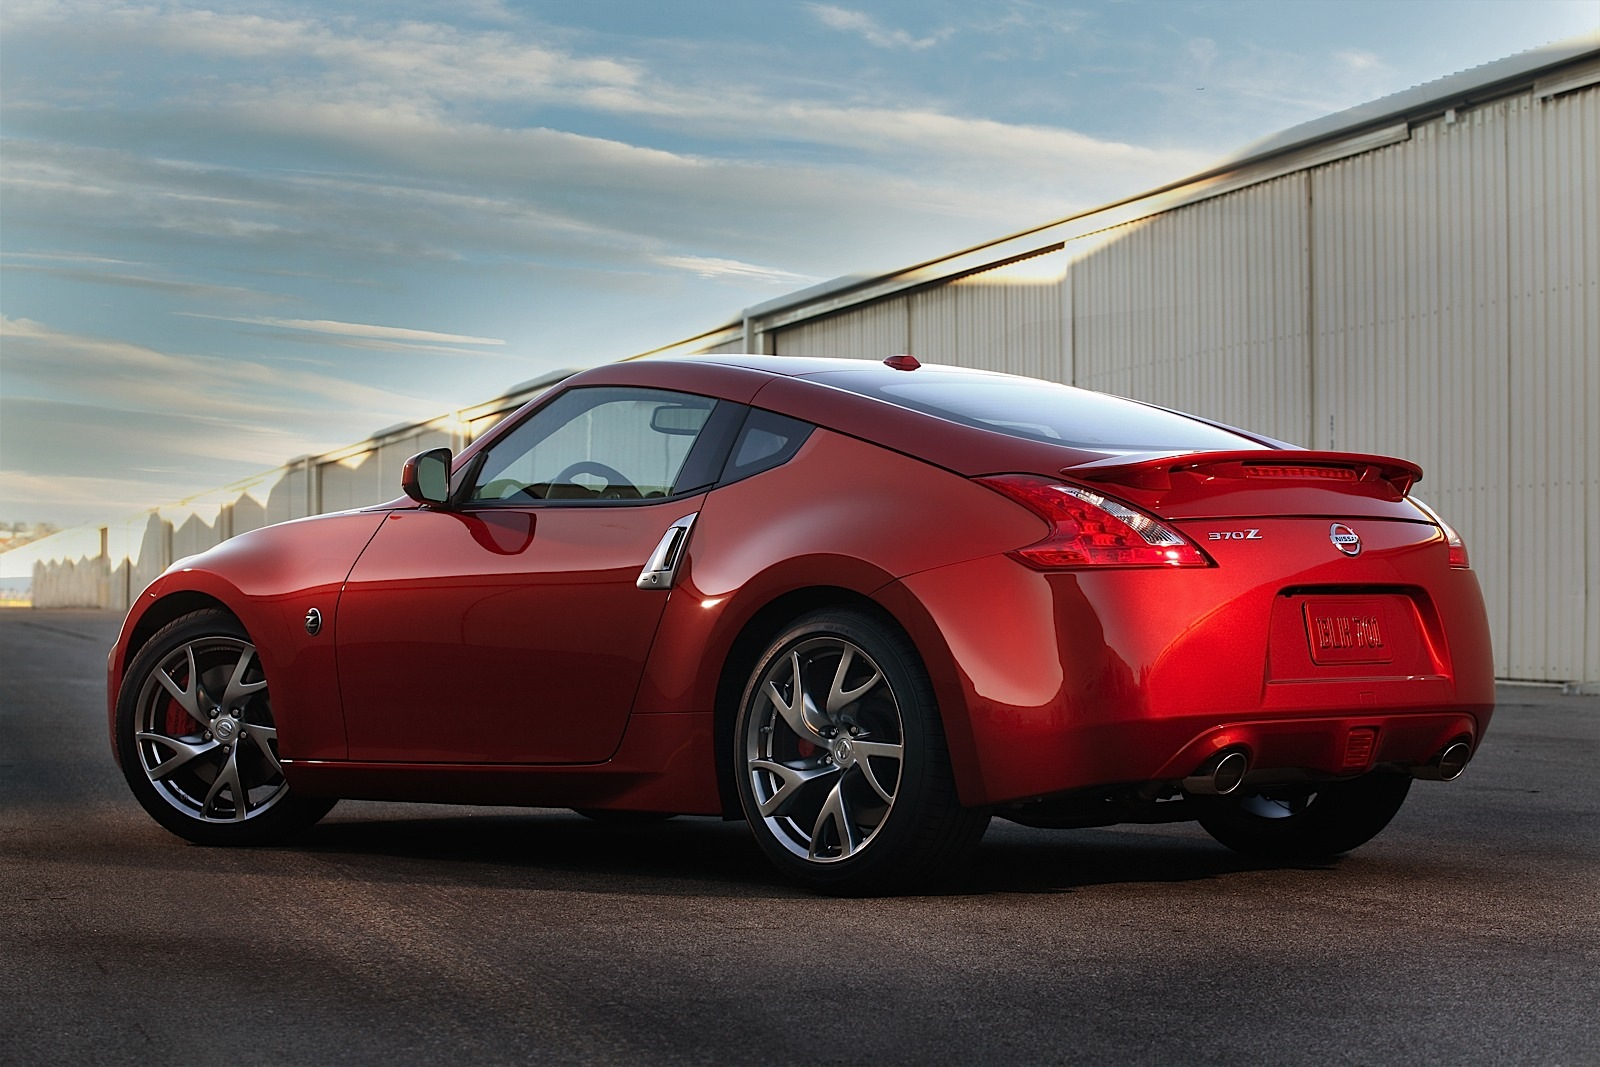 nissan 370z updated for 2013 model year autoevolution. Black Bedroom Furniture Sets. Home Design Ideas